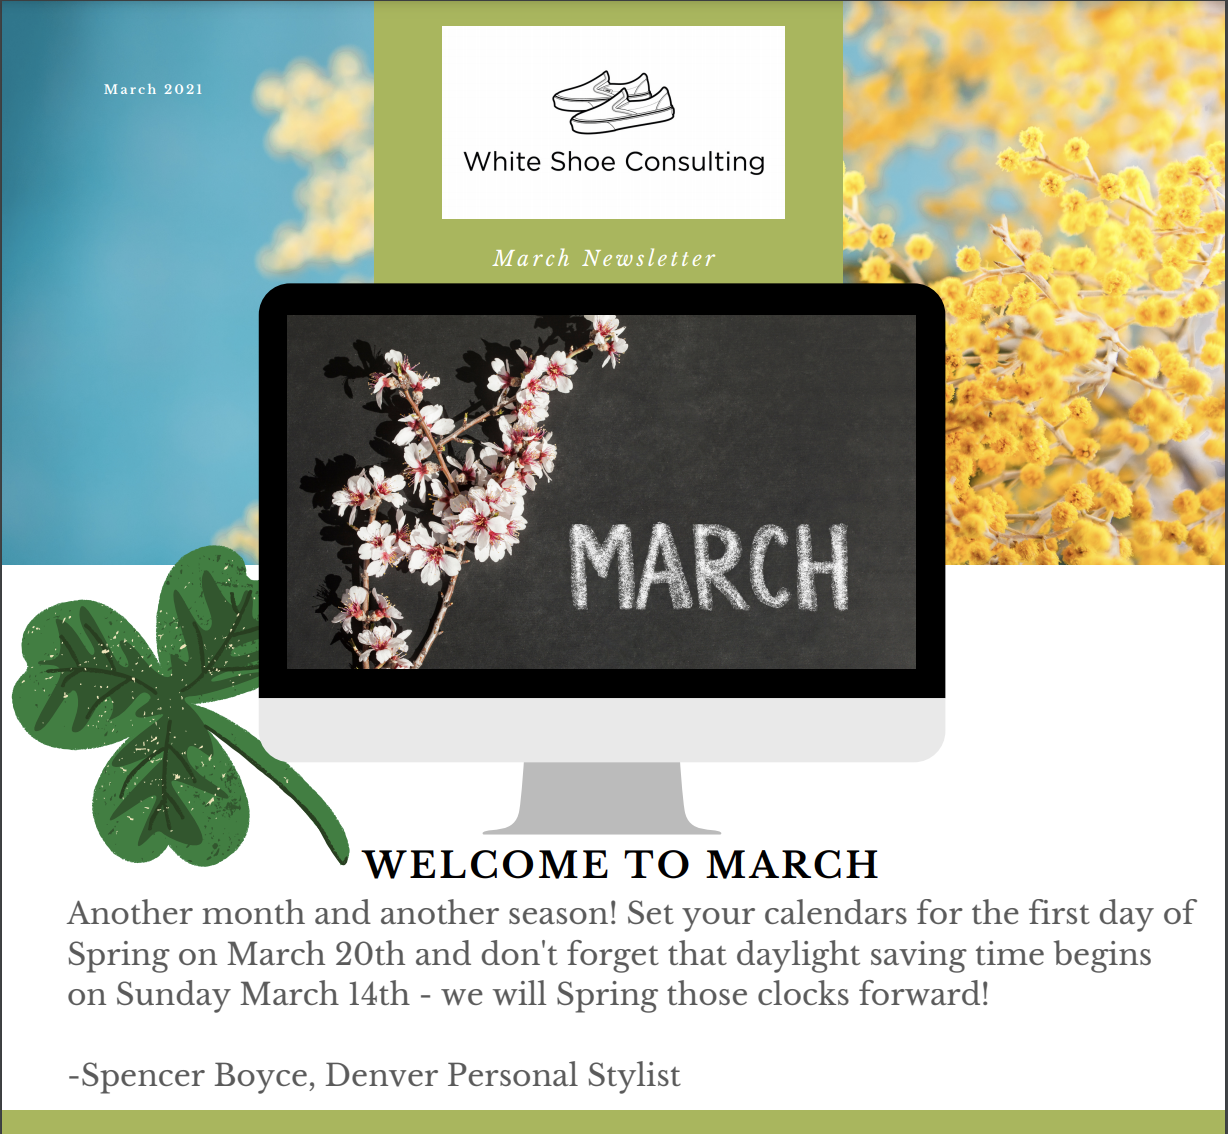 March stylized image with spring flowers and clovers all over to introduce the March Newsletter.